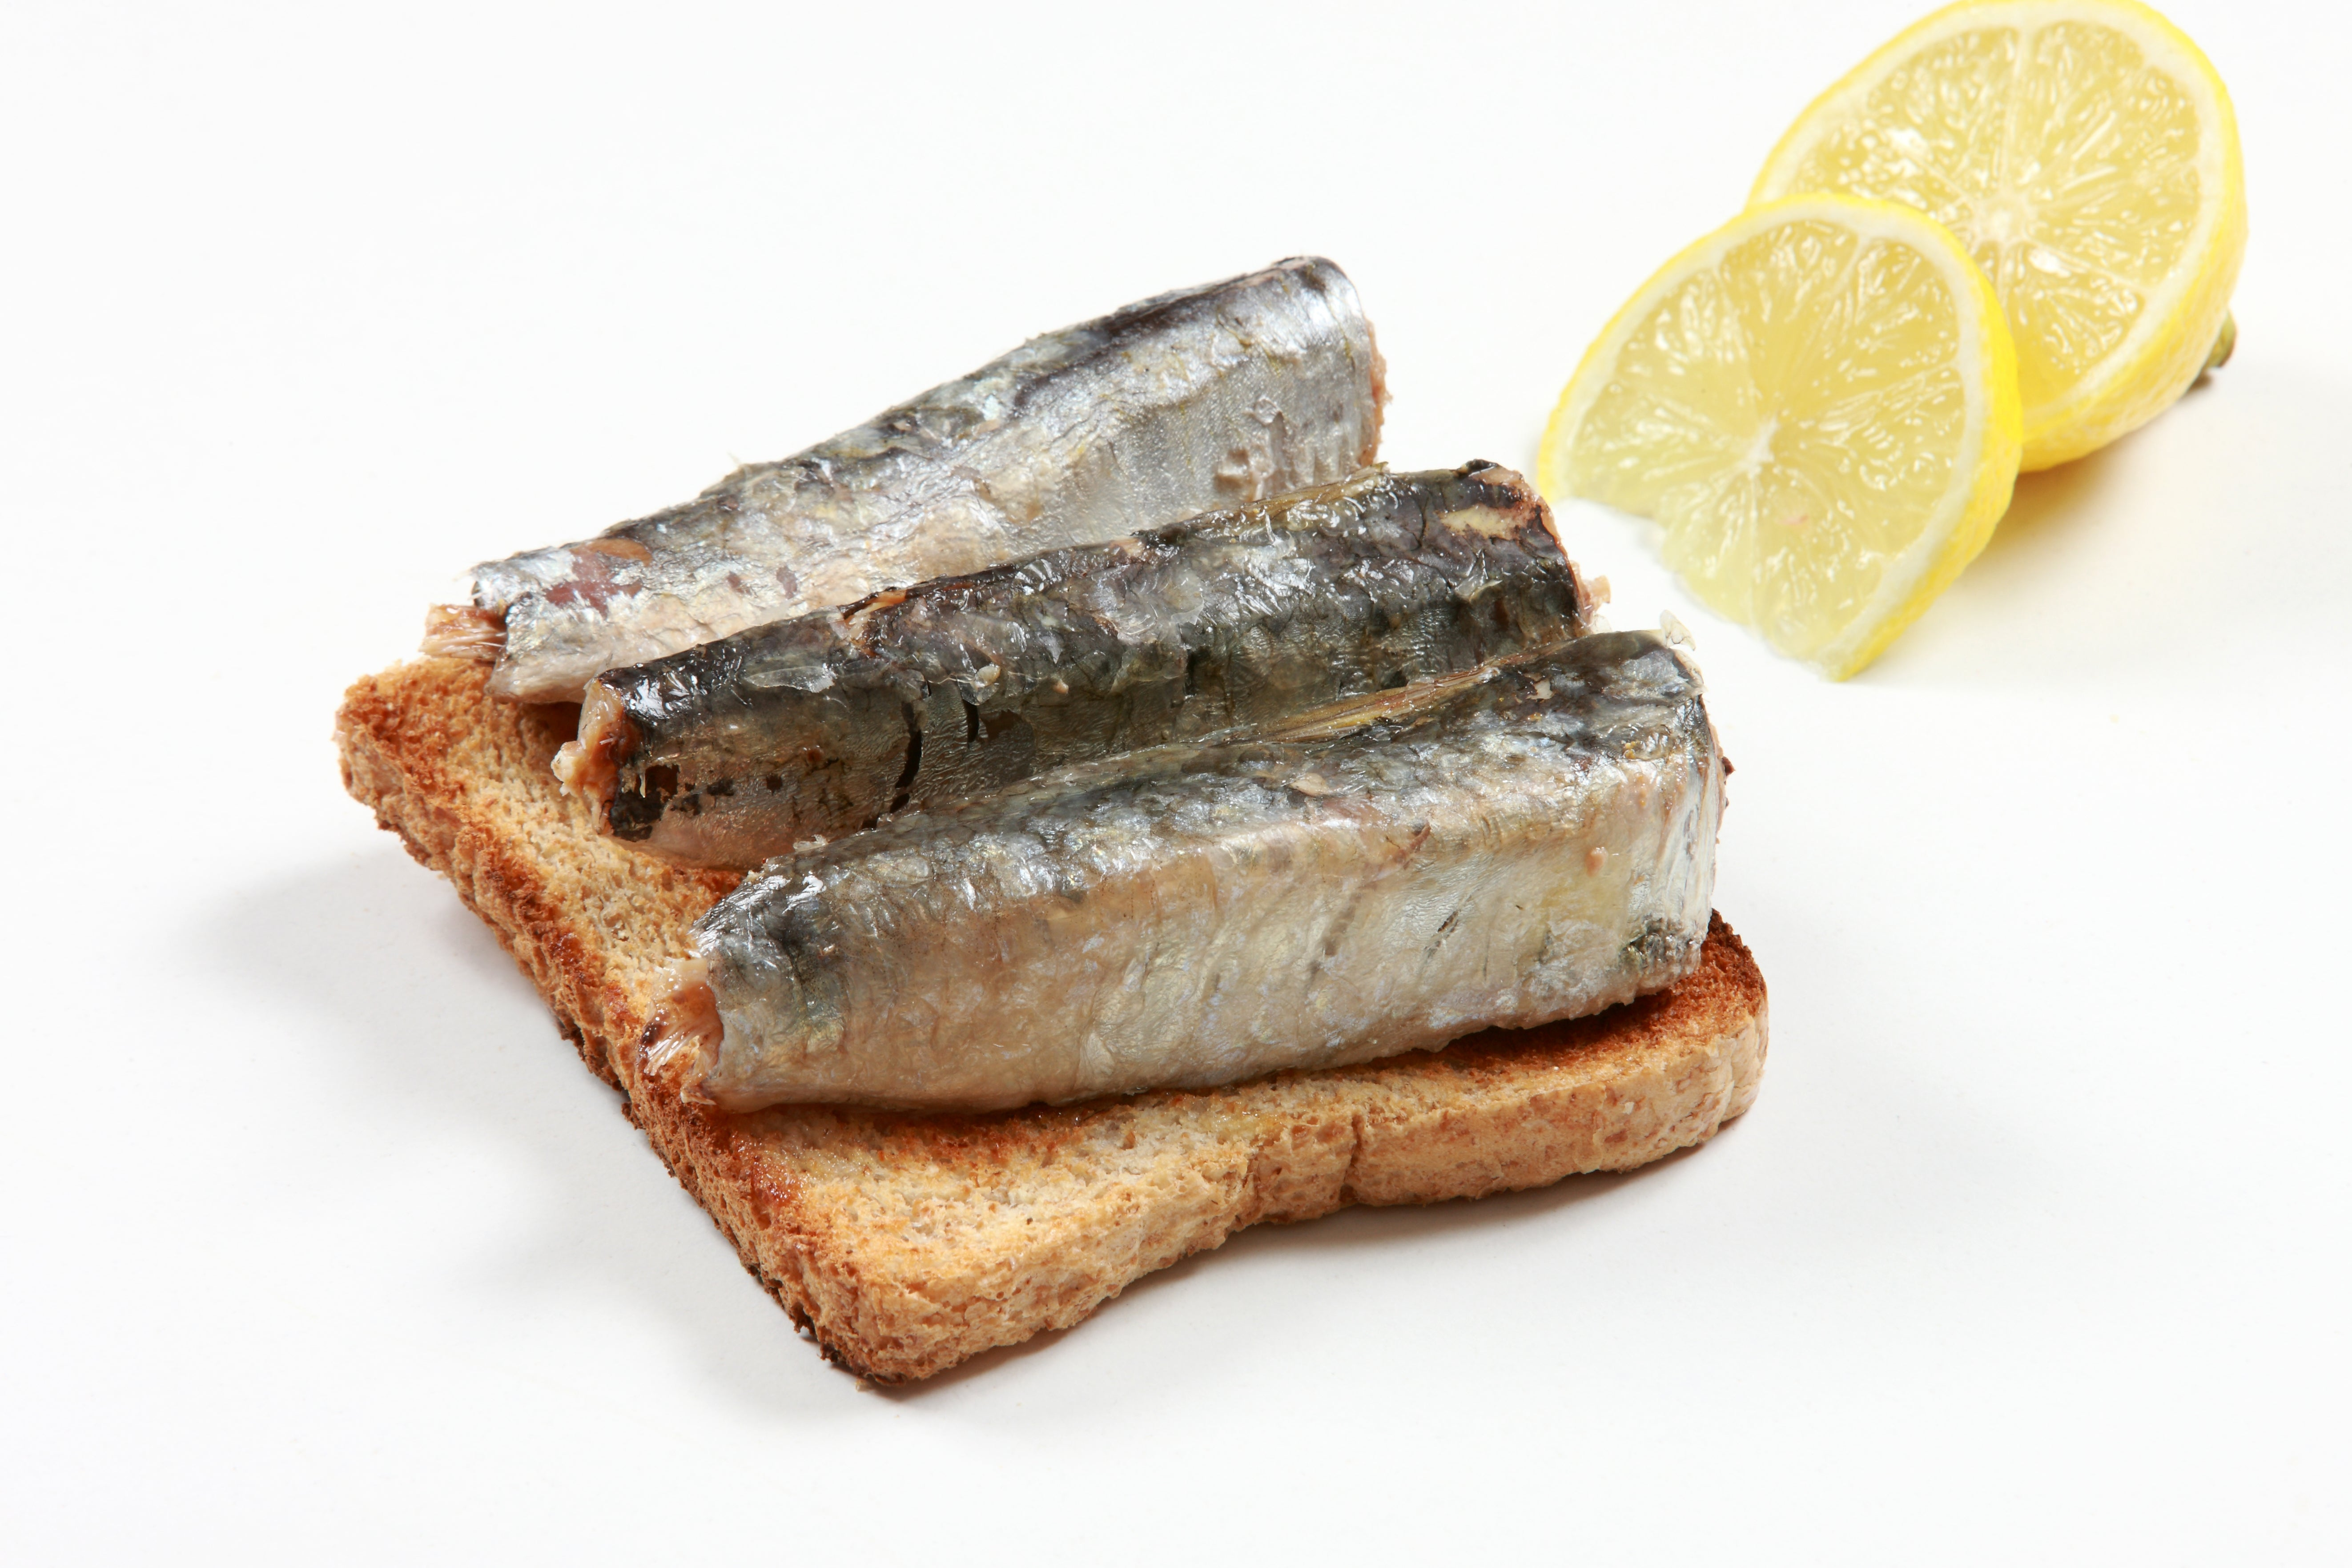 SPICY SALTED MARINATED SARDINE FILLETS - سردين فيليه